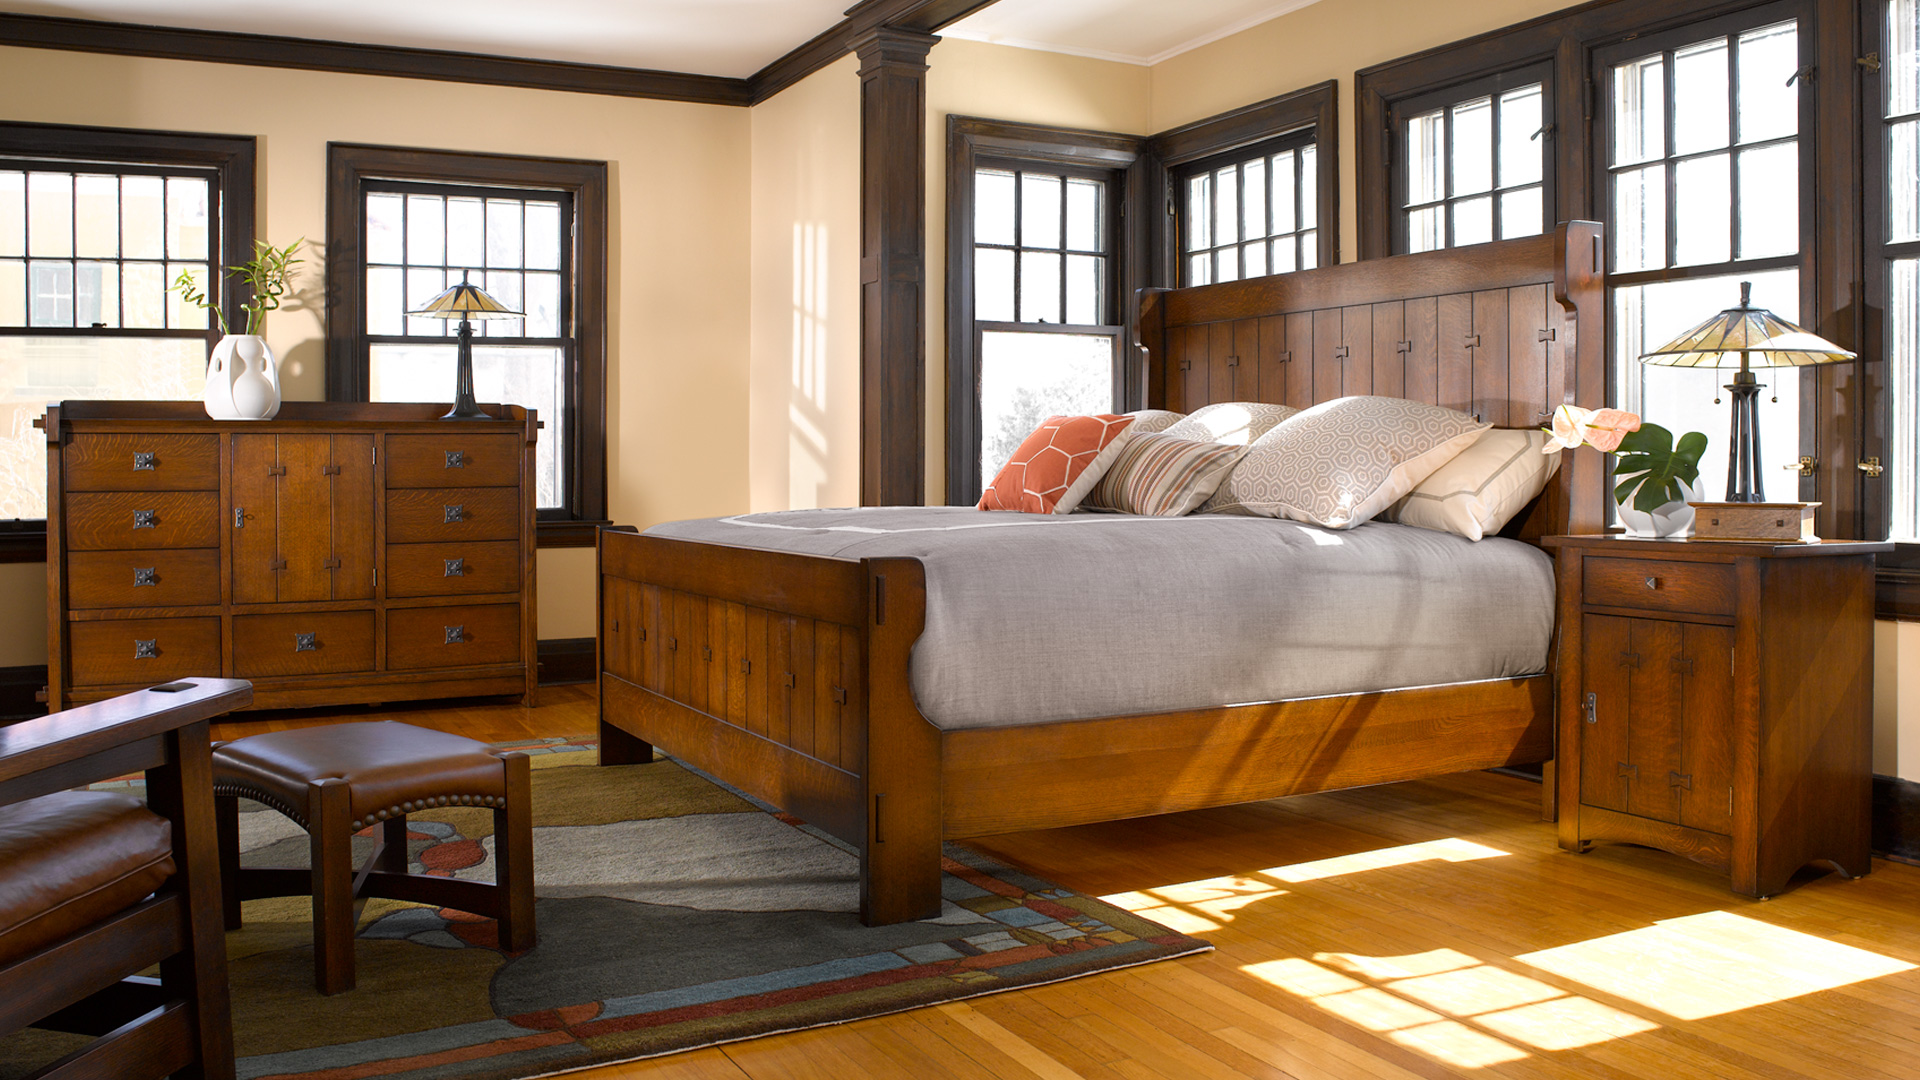 Antonino Barbagallo Photographer – Bedroom Furniture from Stickley ...